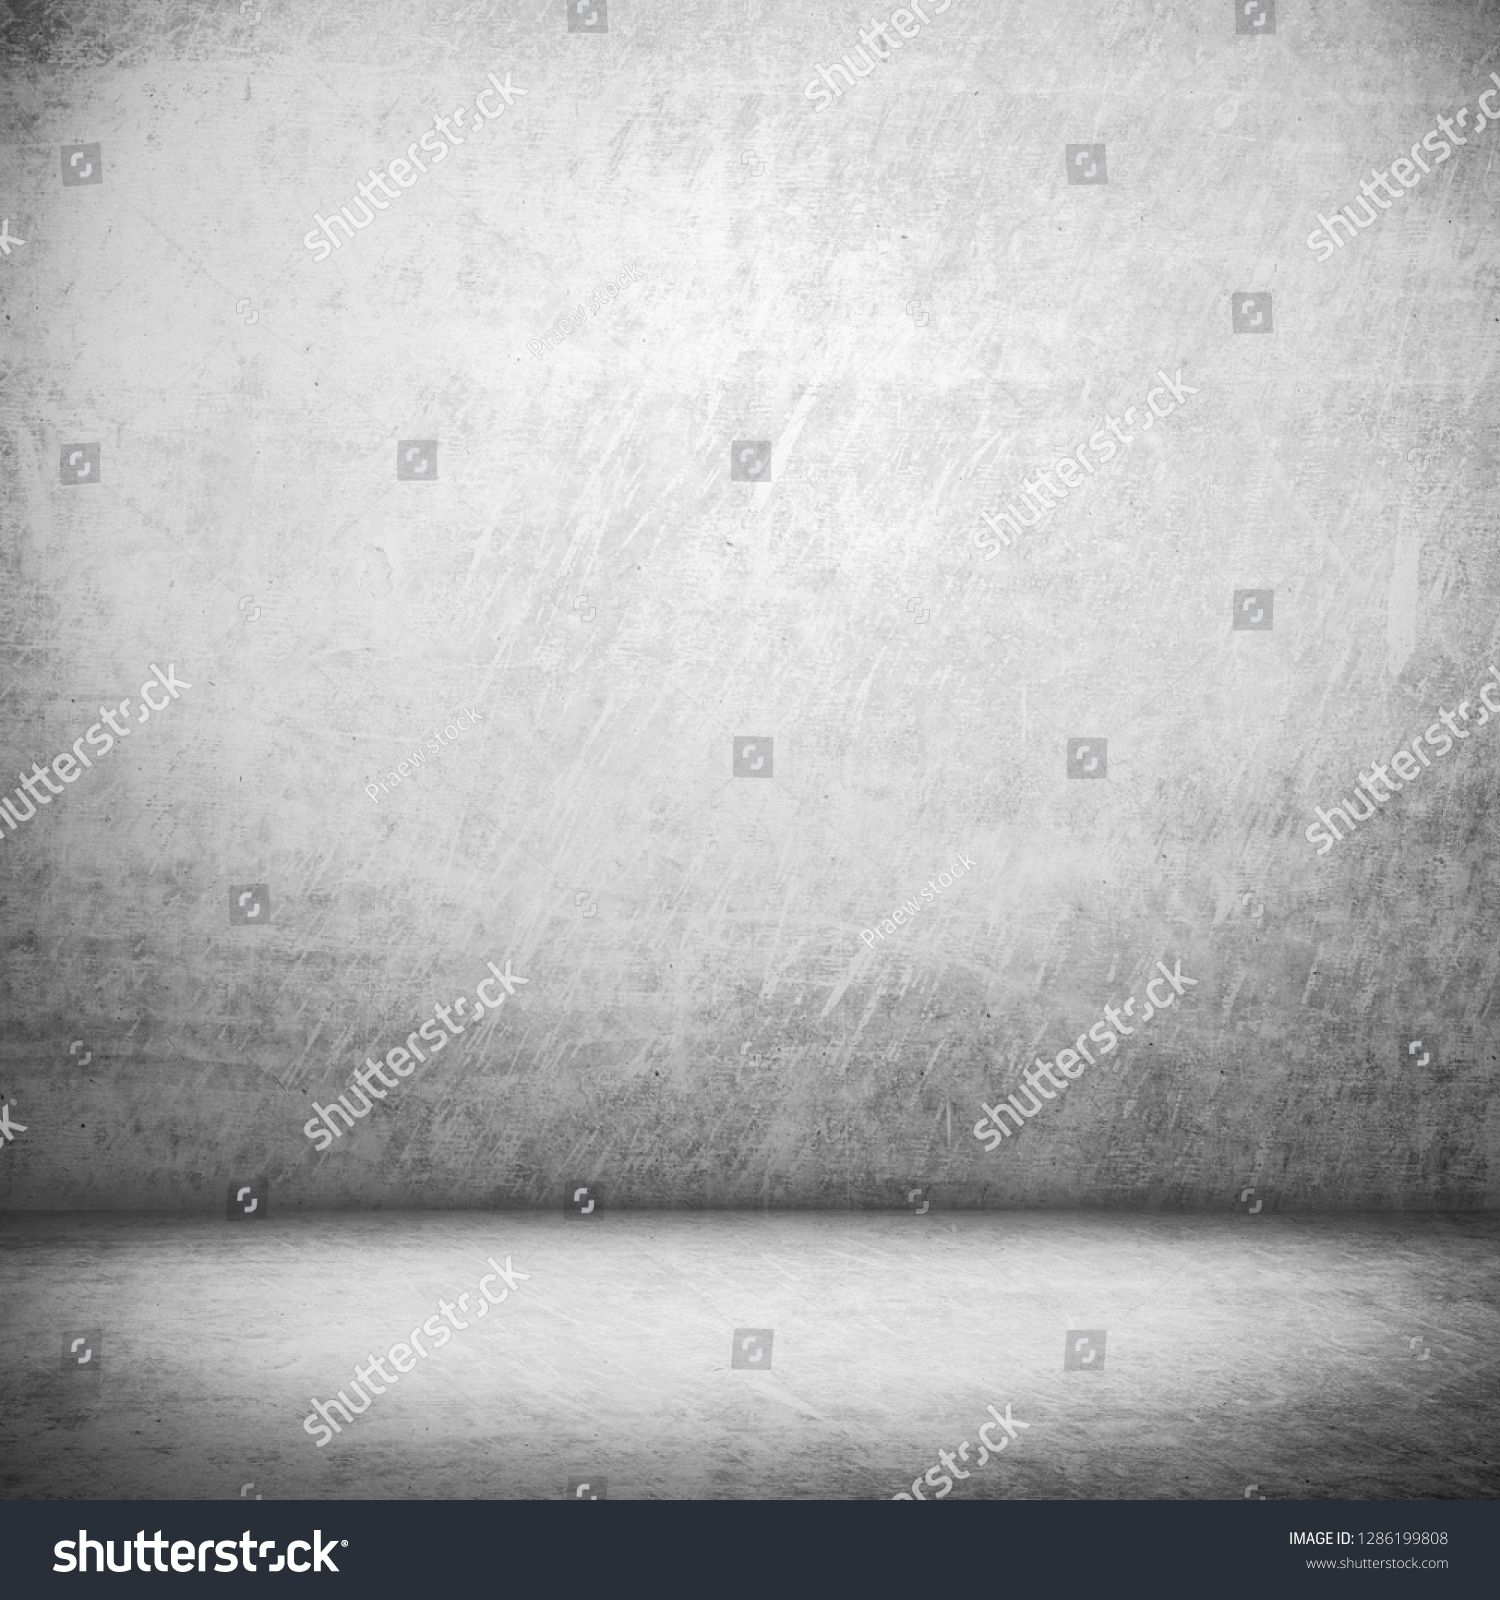 Abstract Grungy White Concrete Wall Texture Background Gray Wall And Floor Interior Backdrop For Design Art Concrete Wall Texture White Concrete Concrete Wall